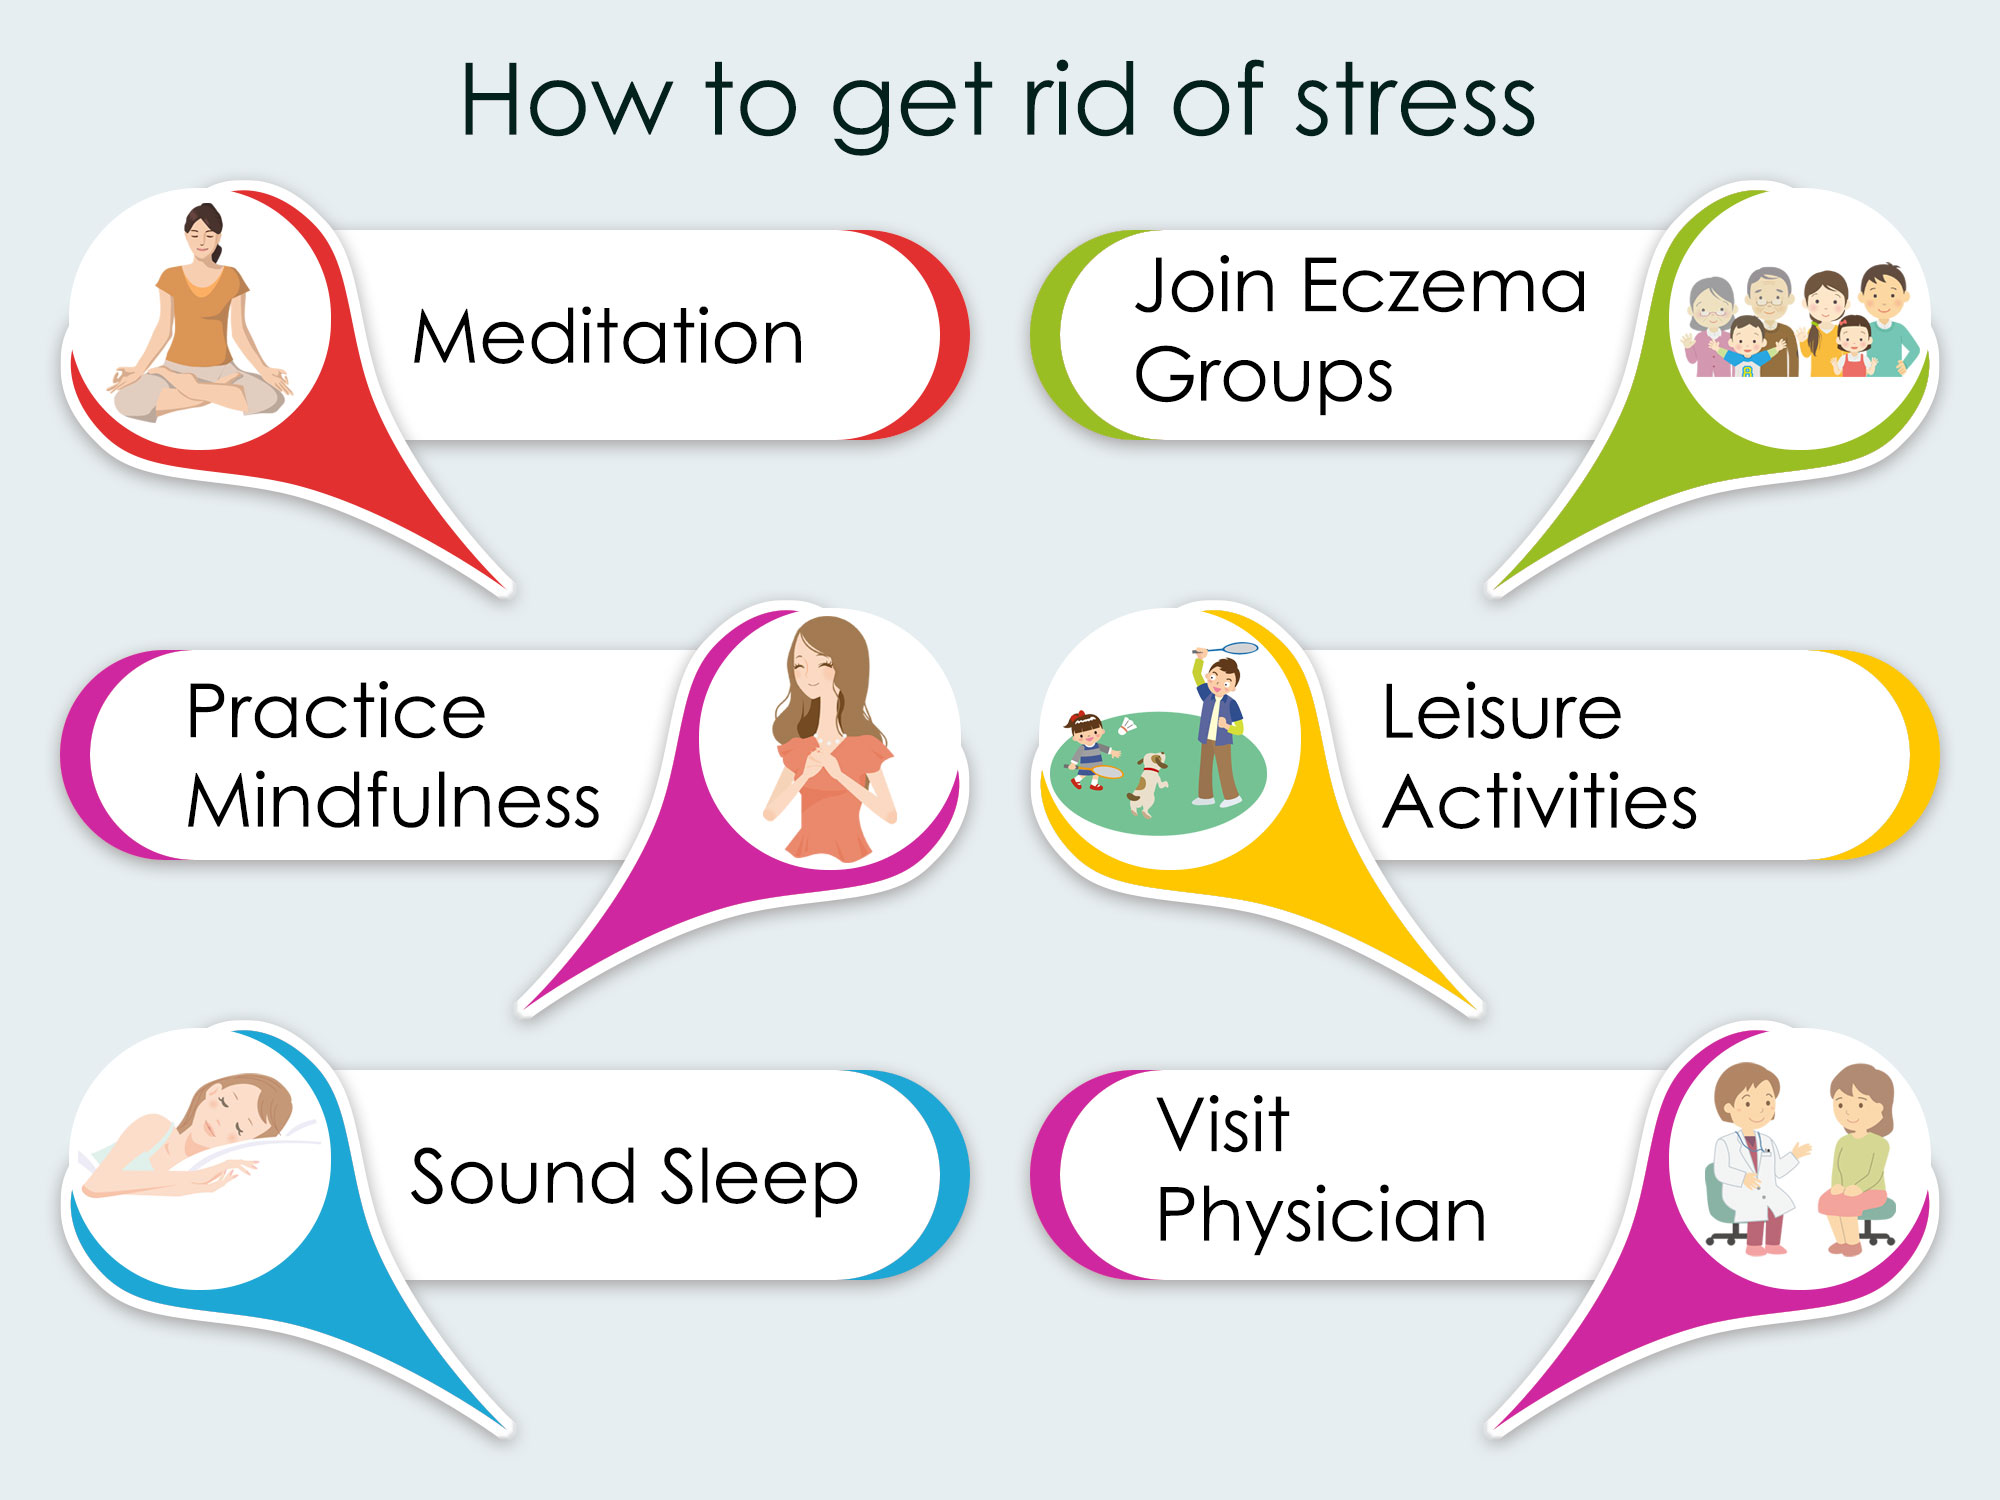 How to get rid of Stress in Eczema